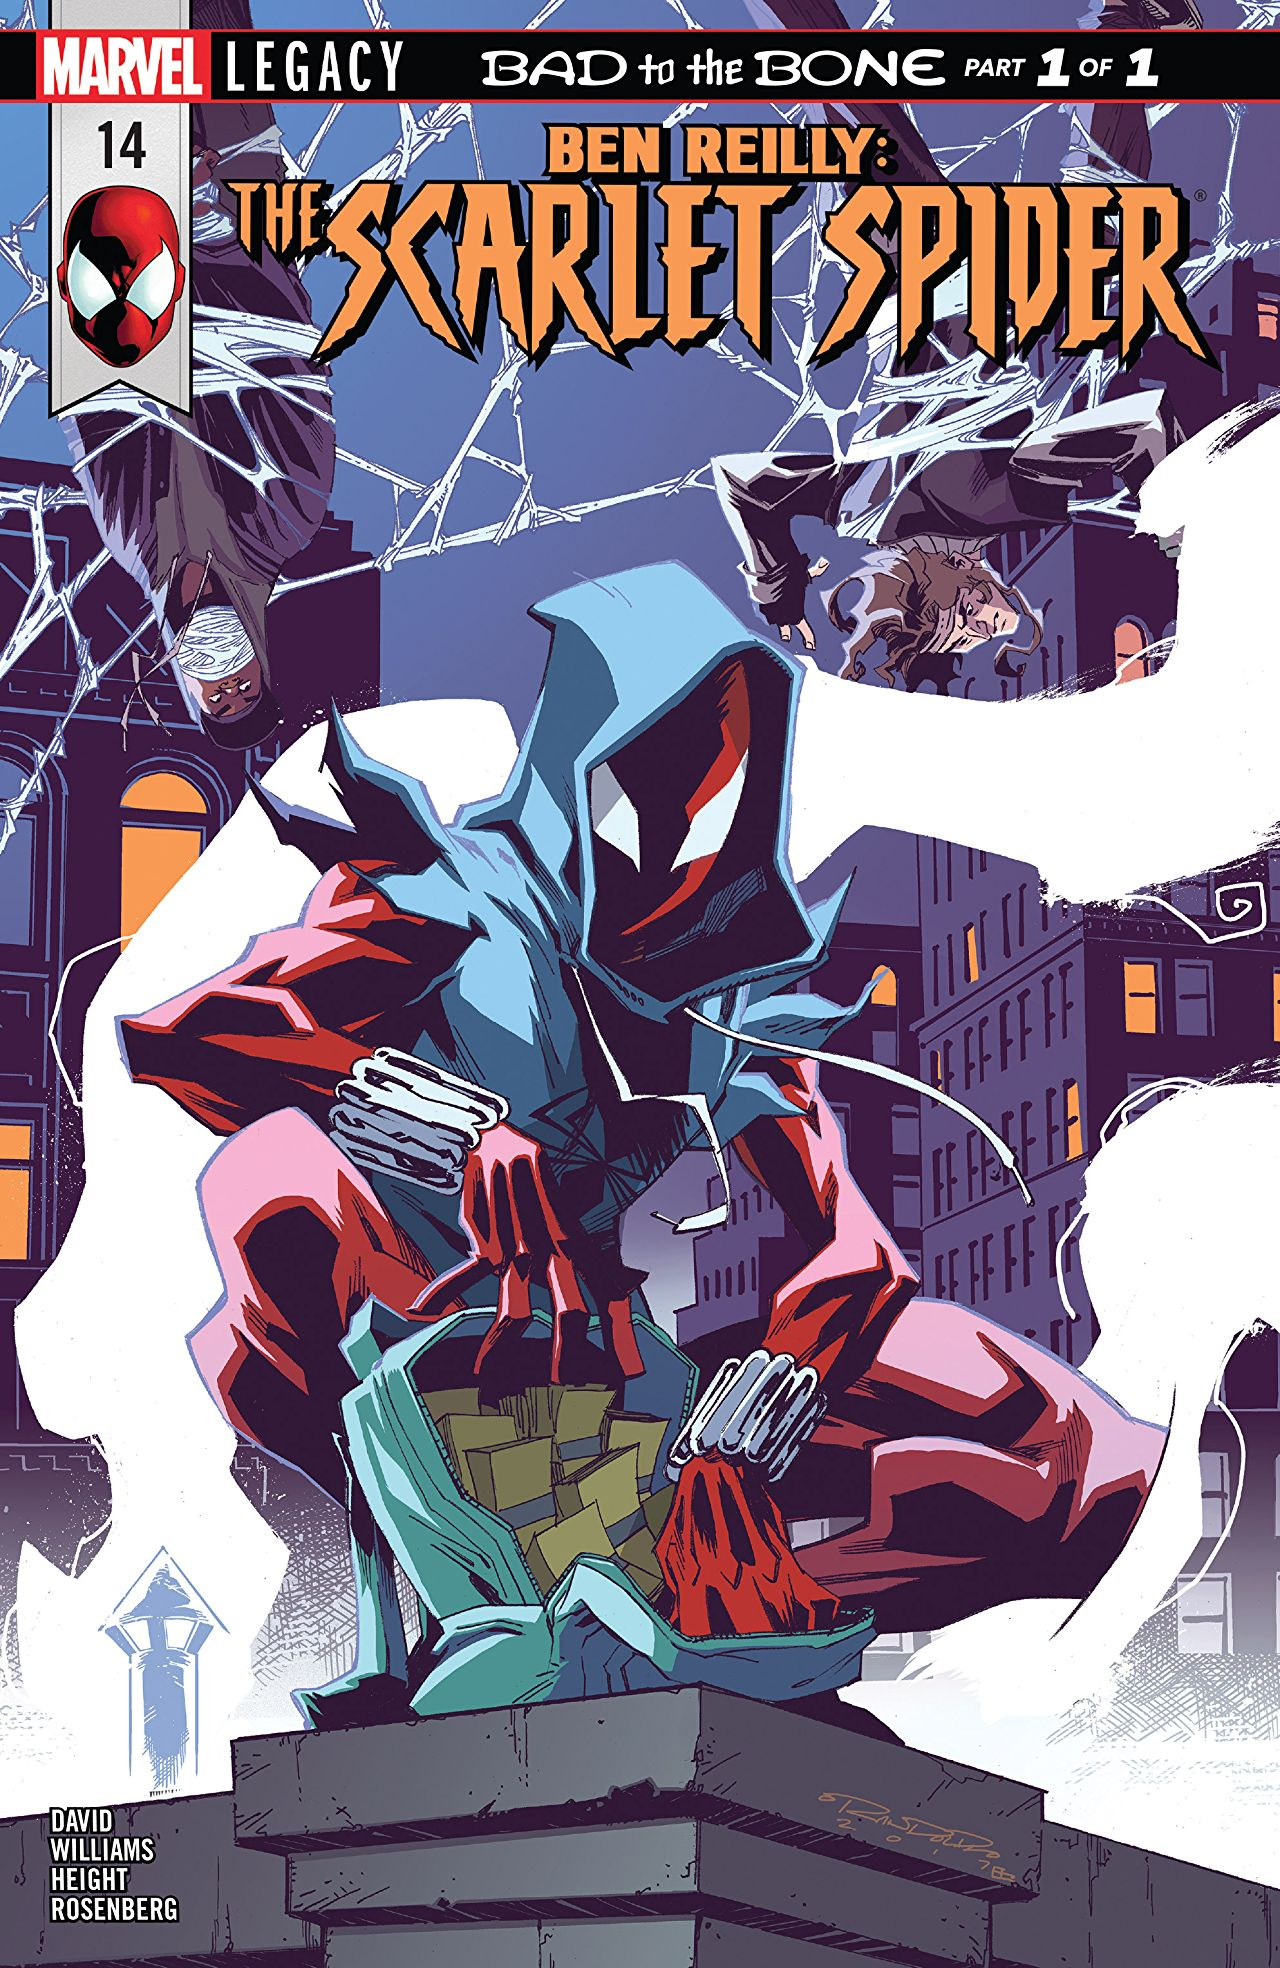 Marvel Preview: Ben Reilly: The Scarlet Spider #14